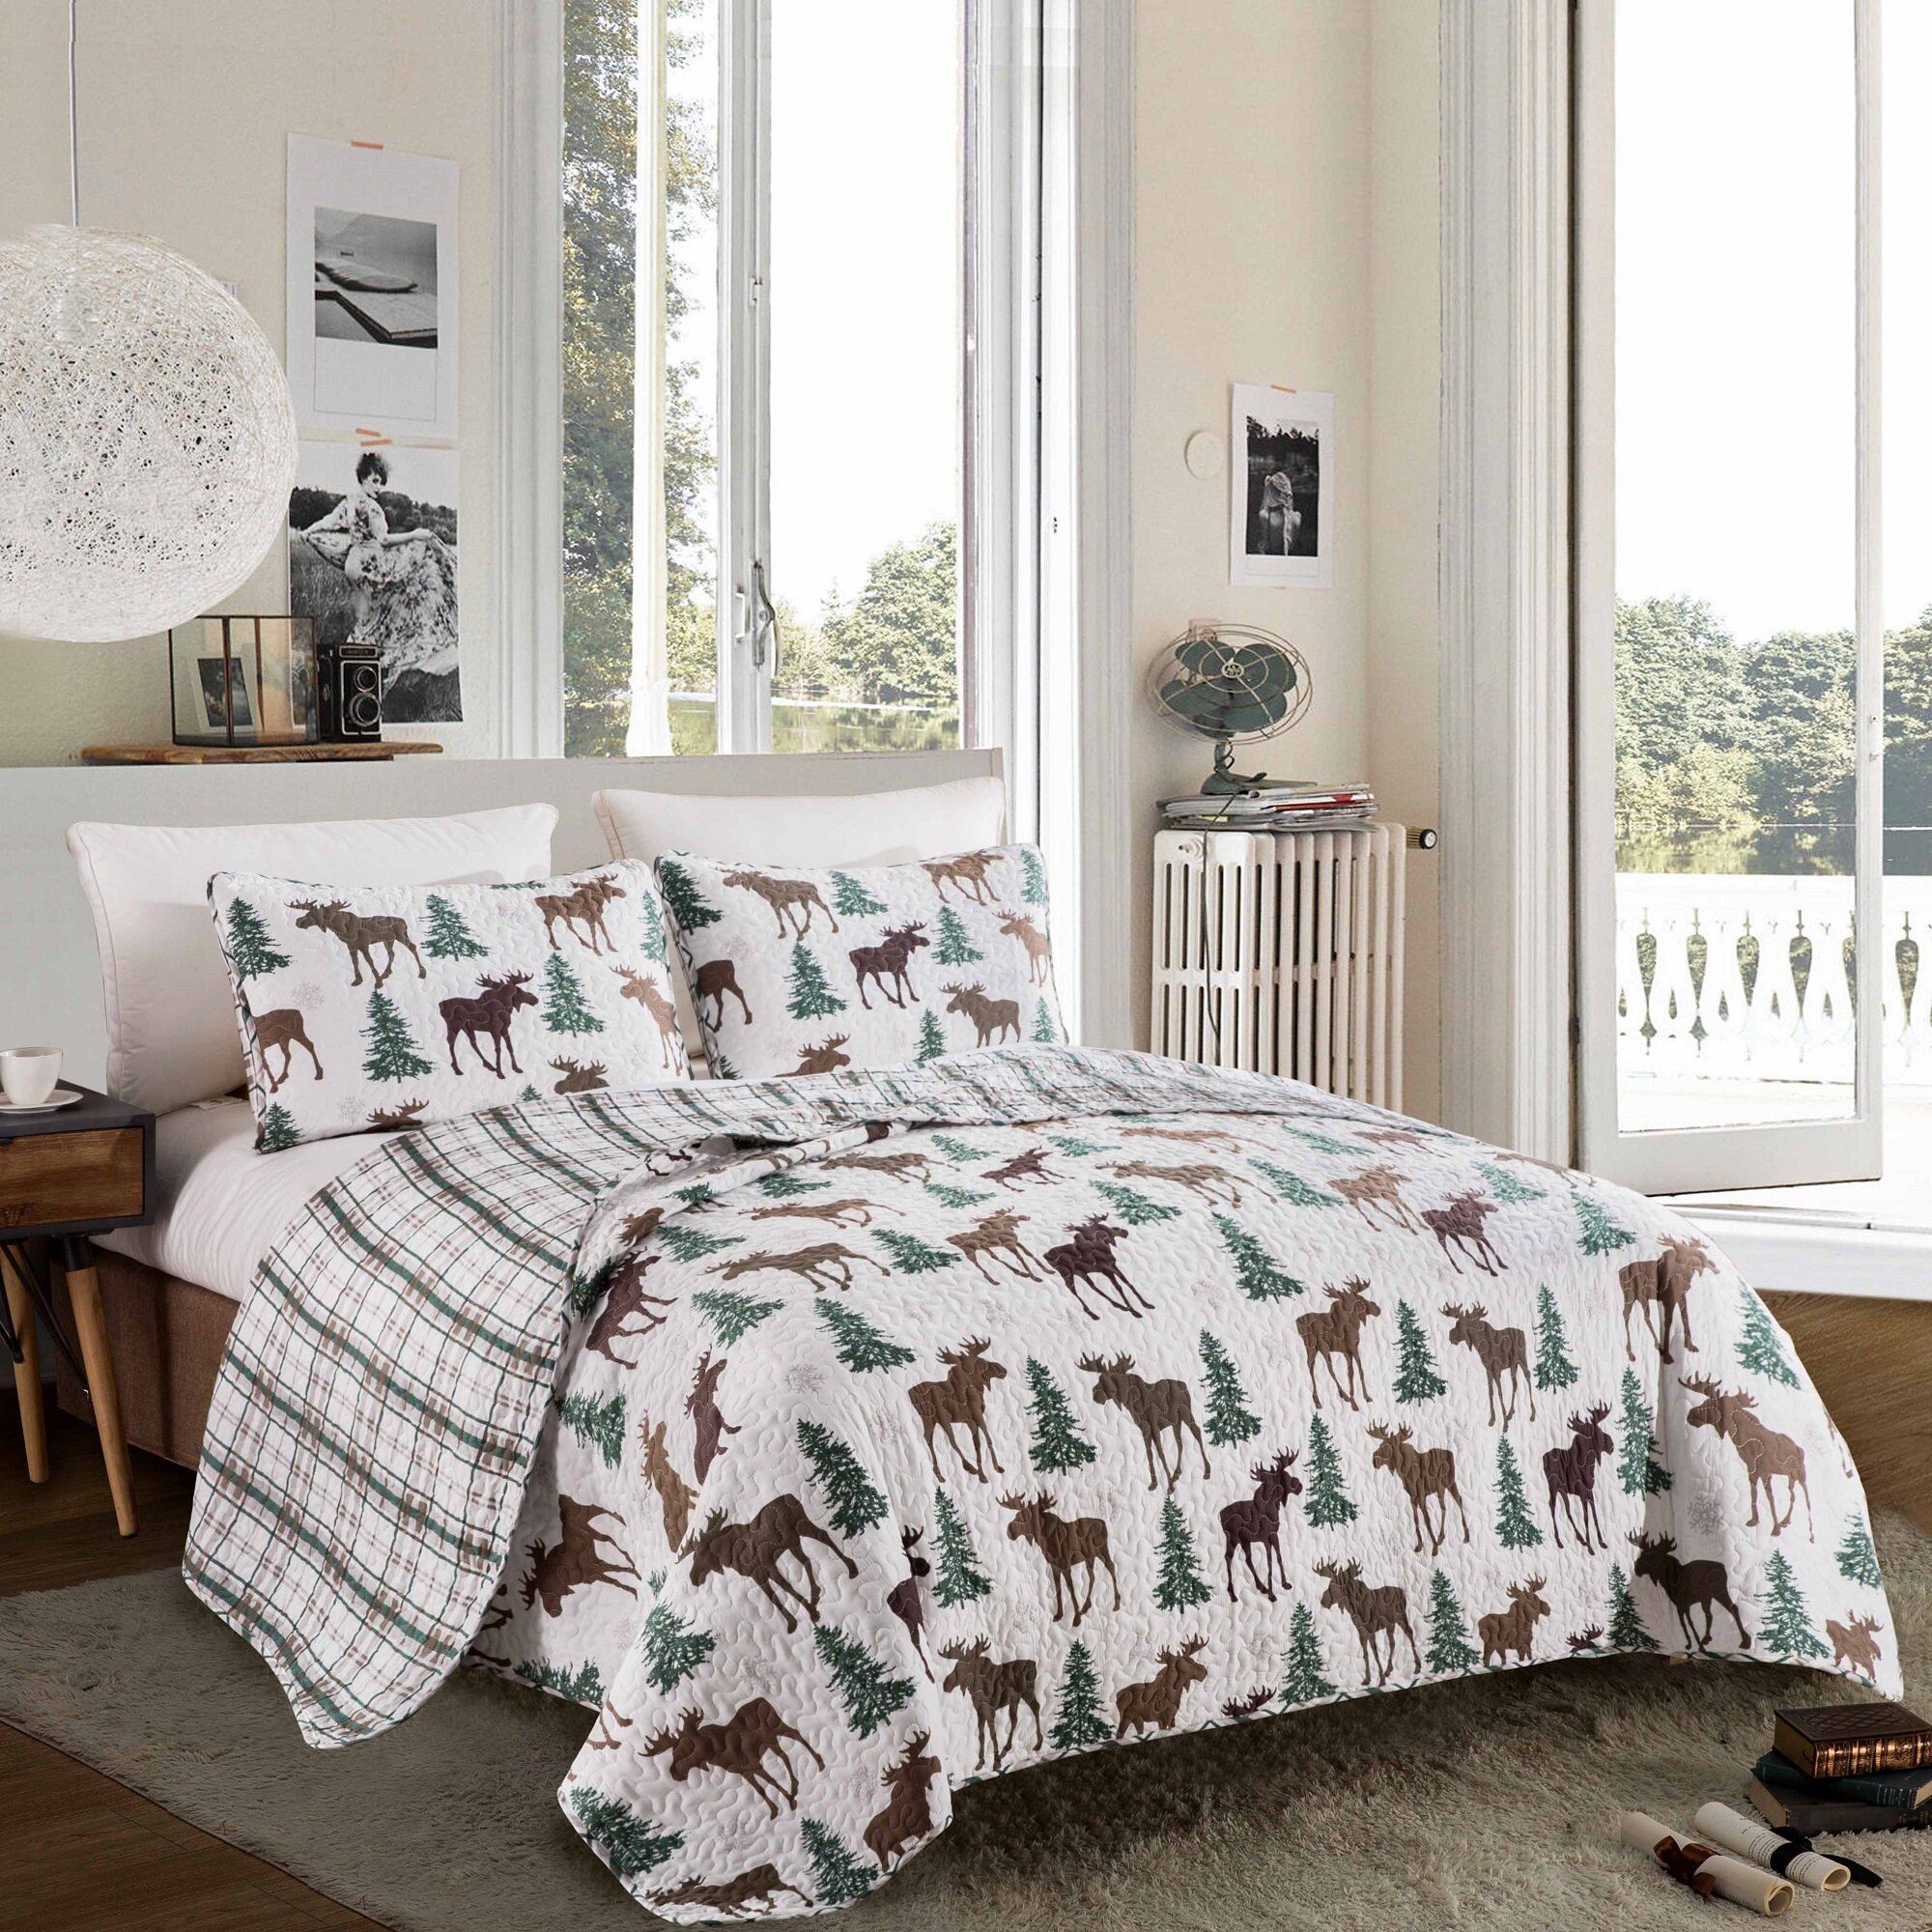 No Comforter Christmas Deer Twin Duvet Cover Kids Pink Twin Bedding Set Premium Cotton Girls Comforte Cover Twin With Zipper Closure Cartoon Teens Bedding Sets Black And White Grid Quilt Cover Kids